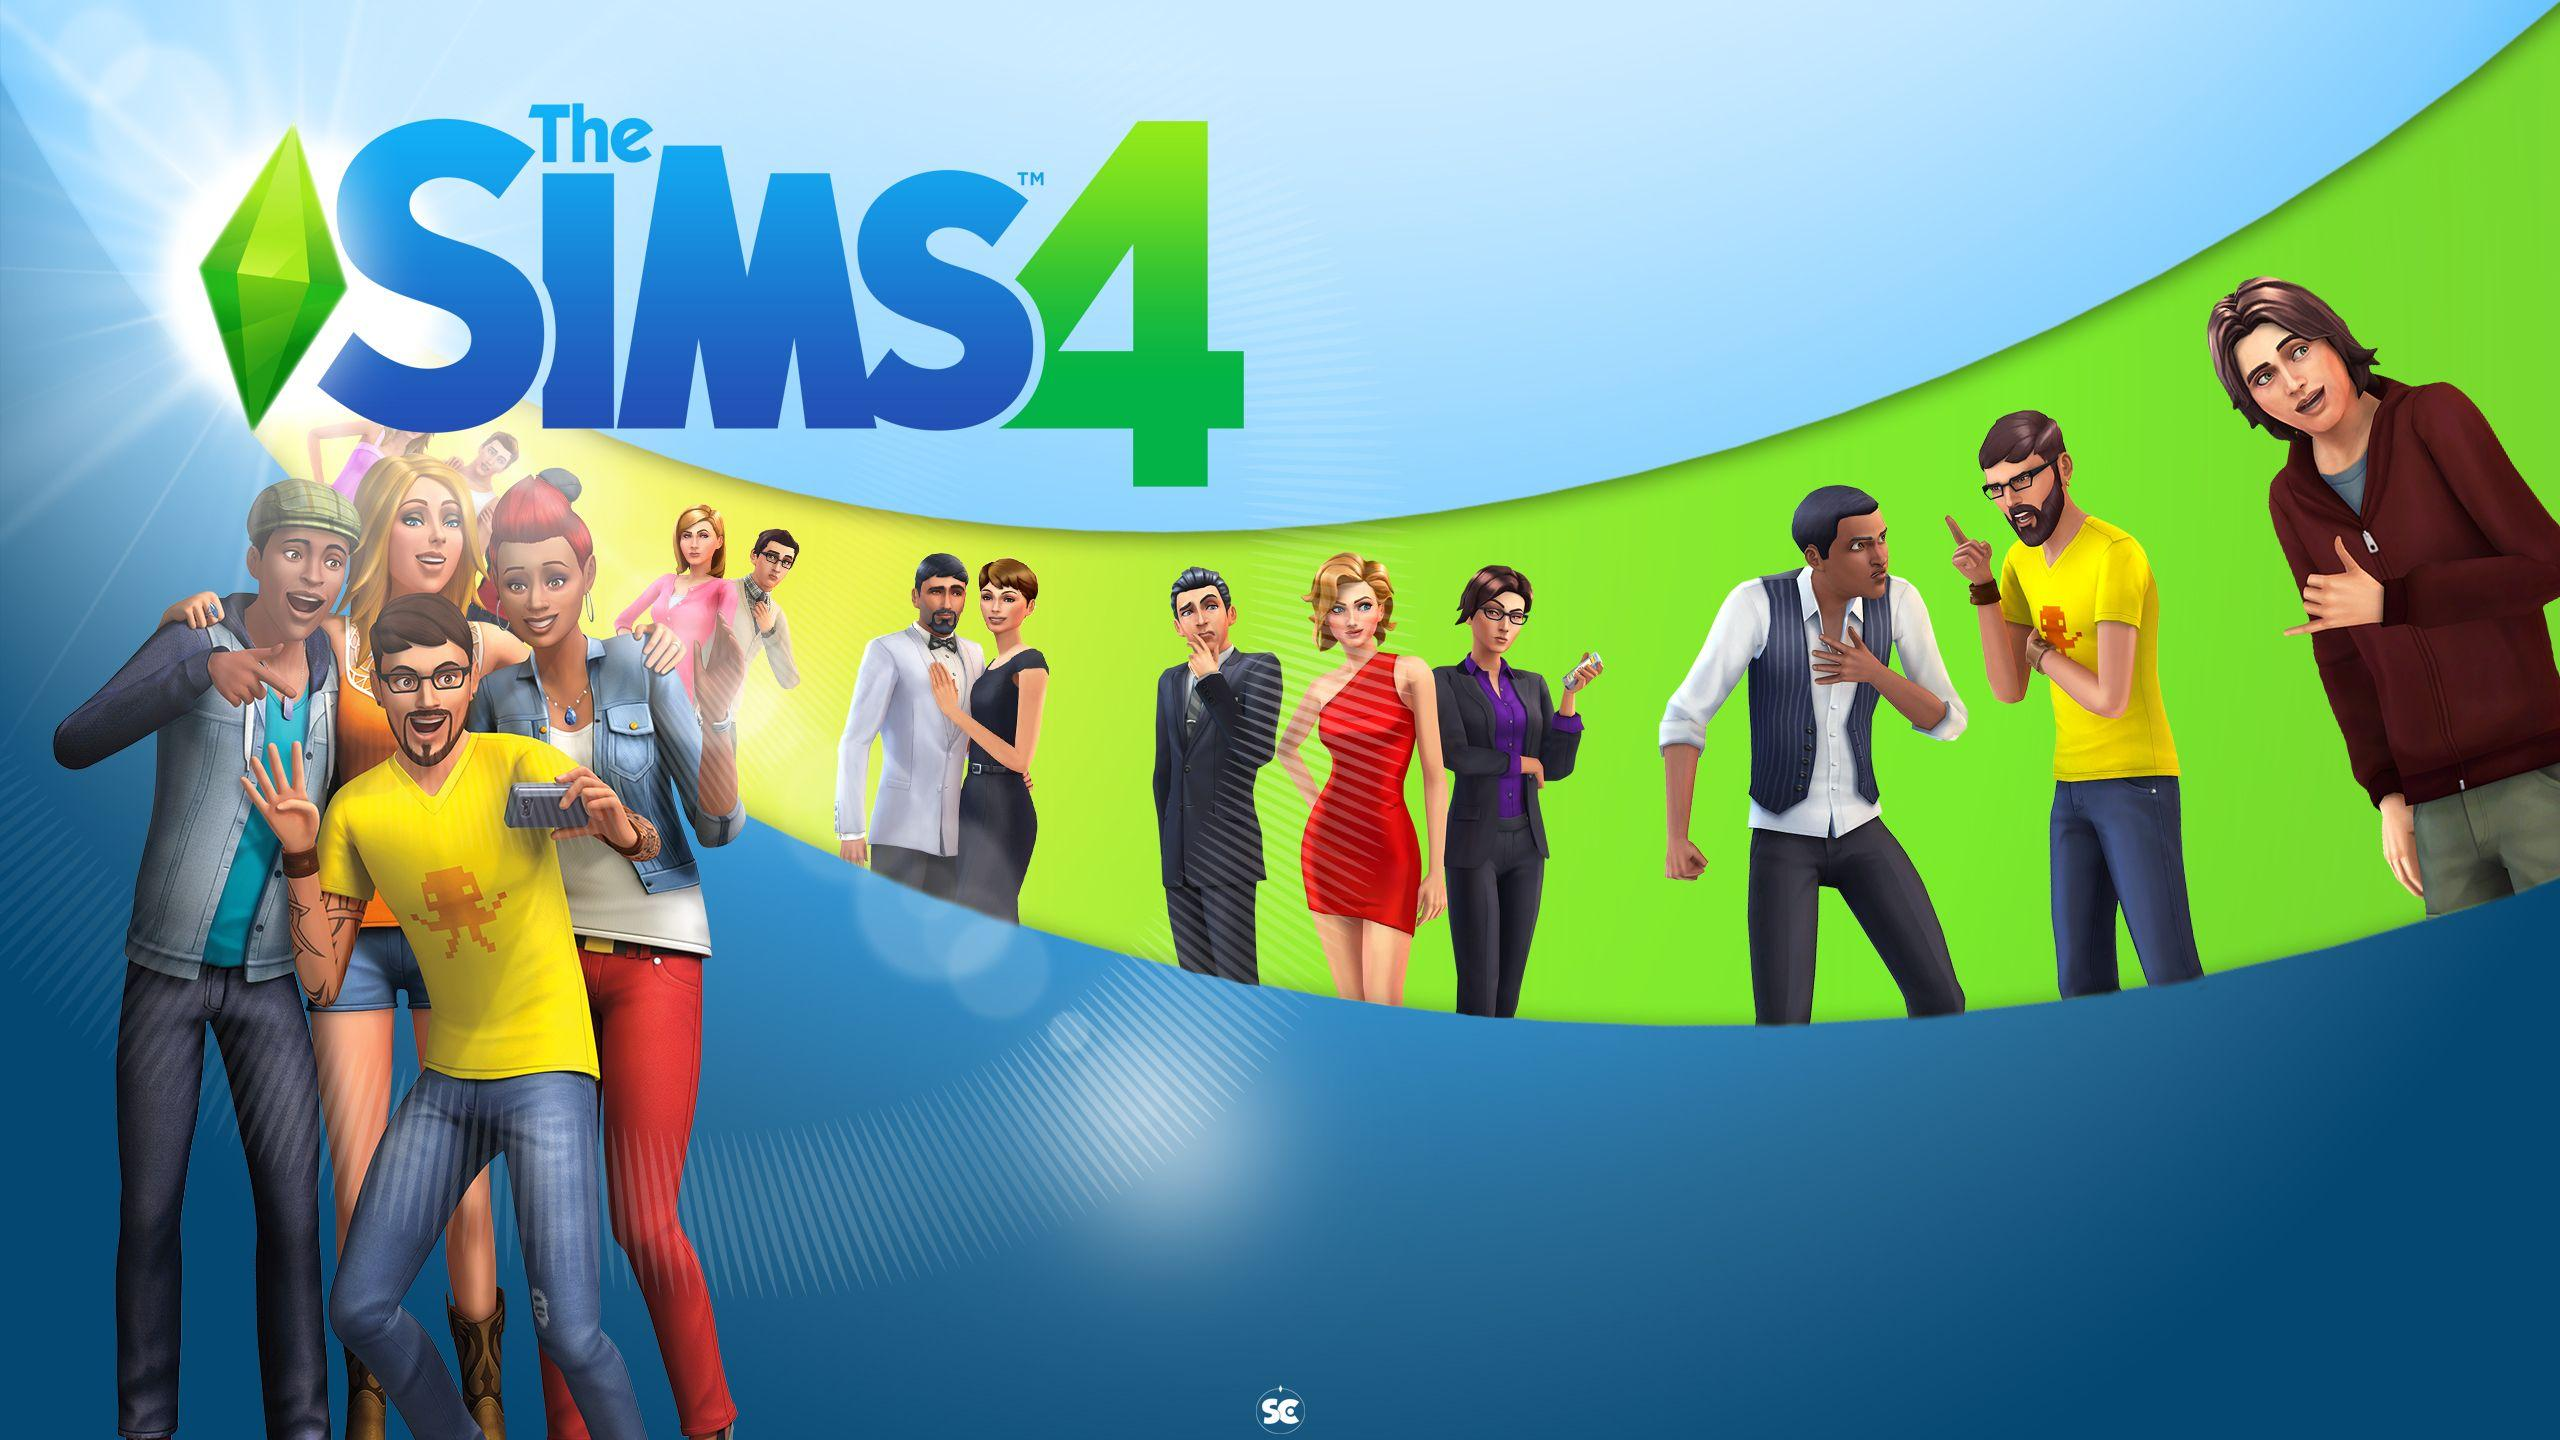 The Sims Wallpapers Wallpaper Cave